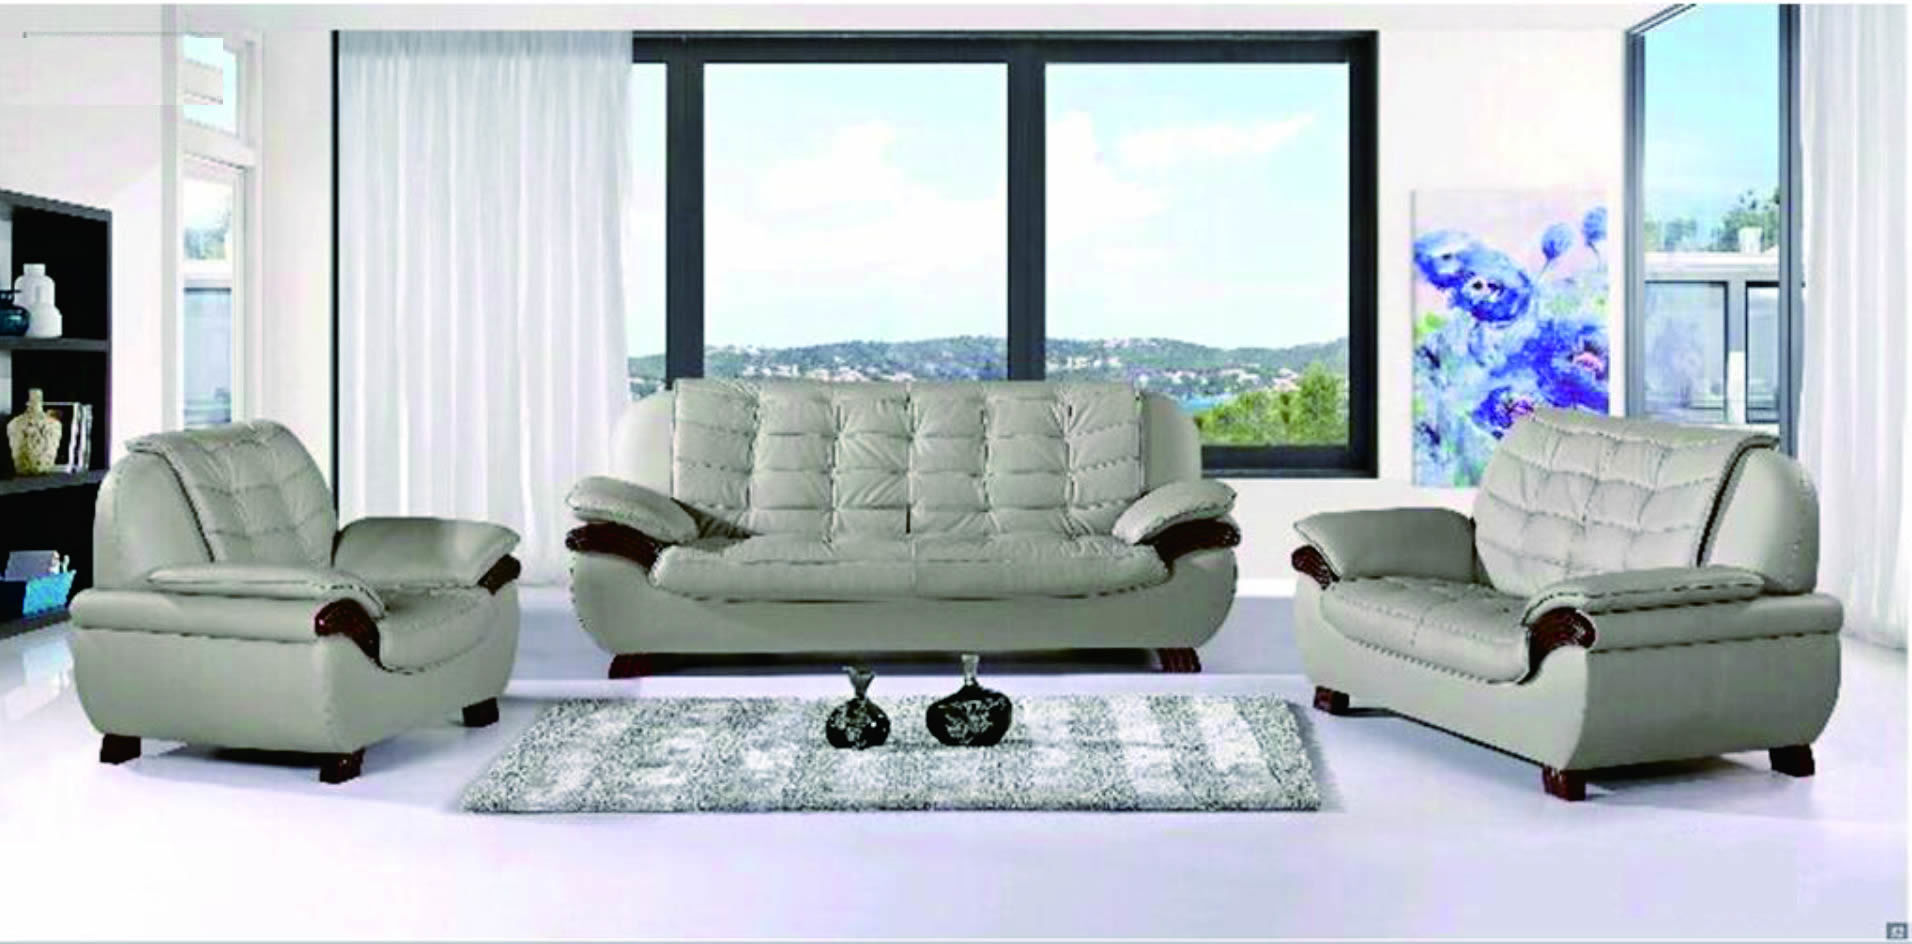 sensational 7 seat sectional sofa model-Latest 7 Seat Sectional sofa Image